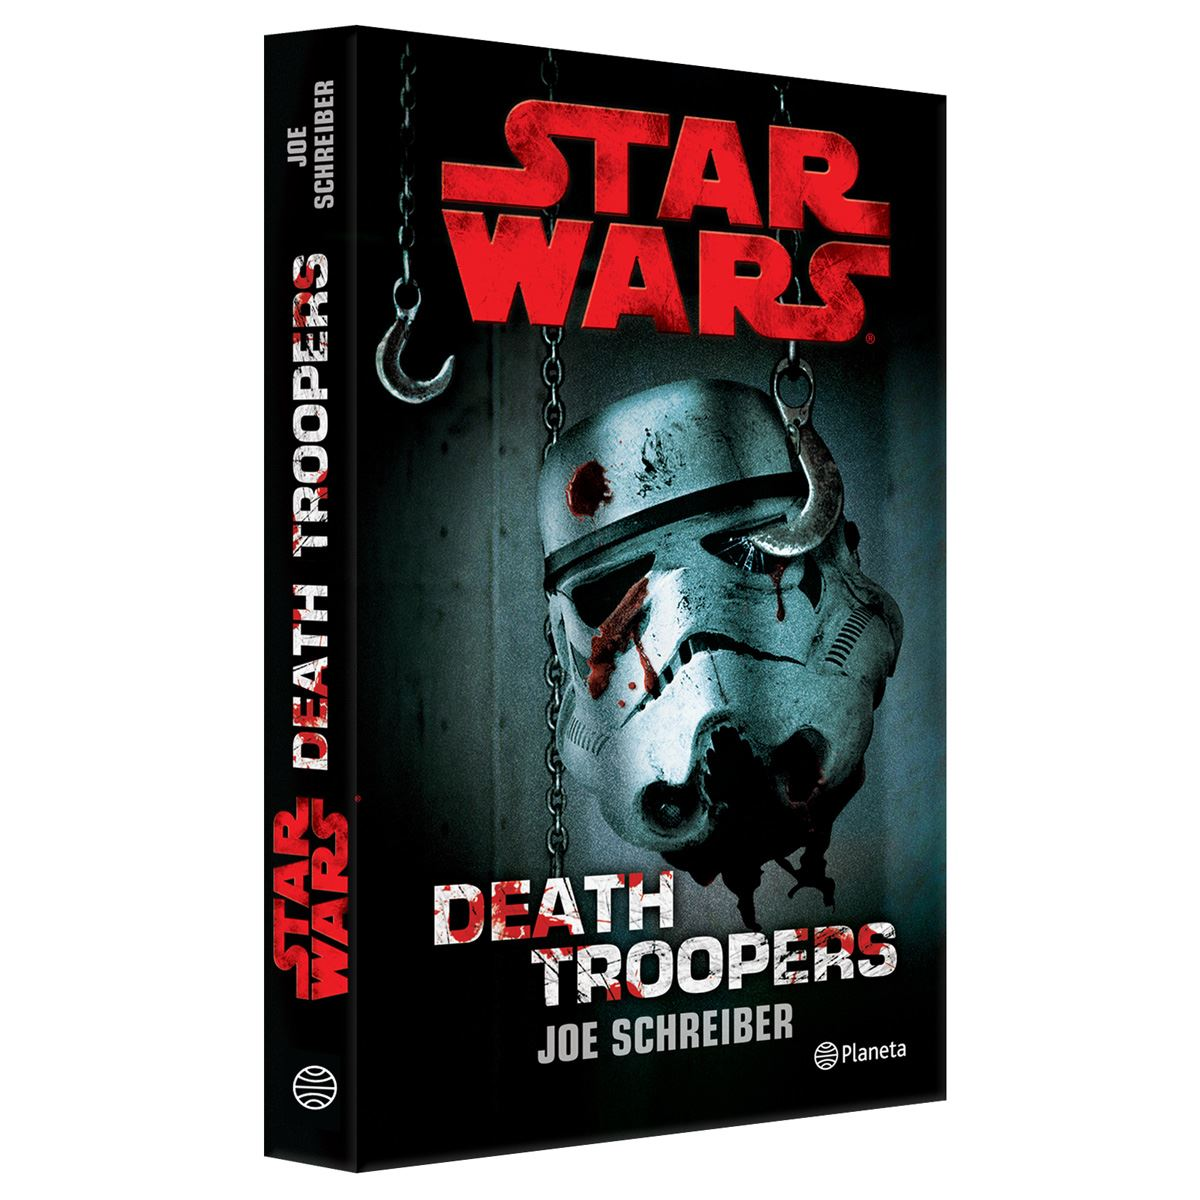 Star wars. death troopers Libro - Sanborns